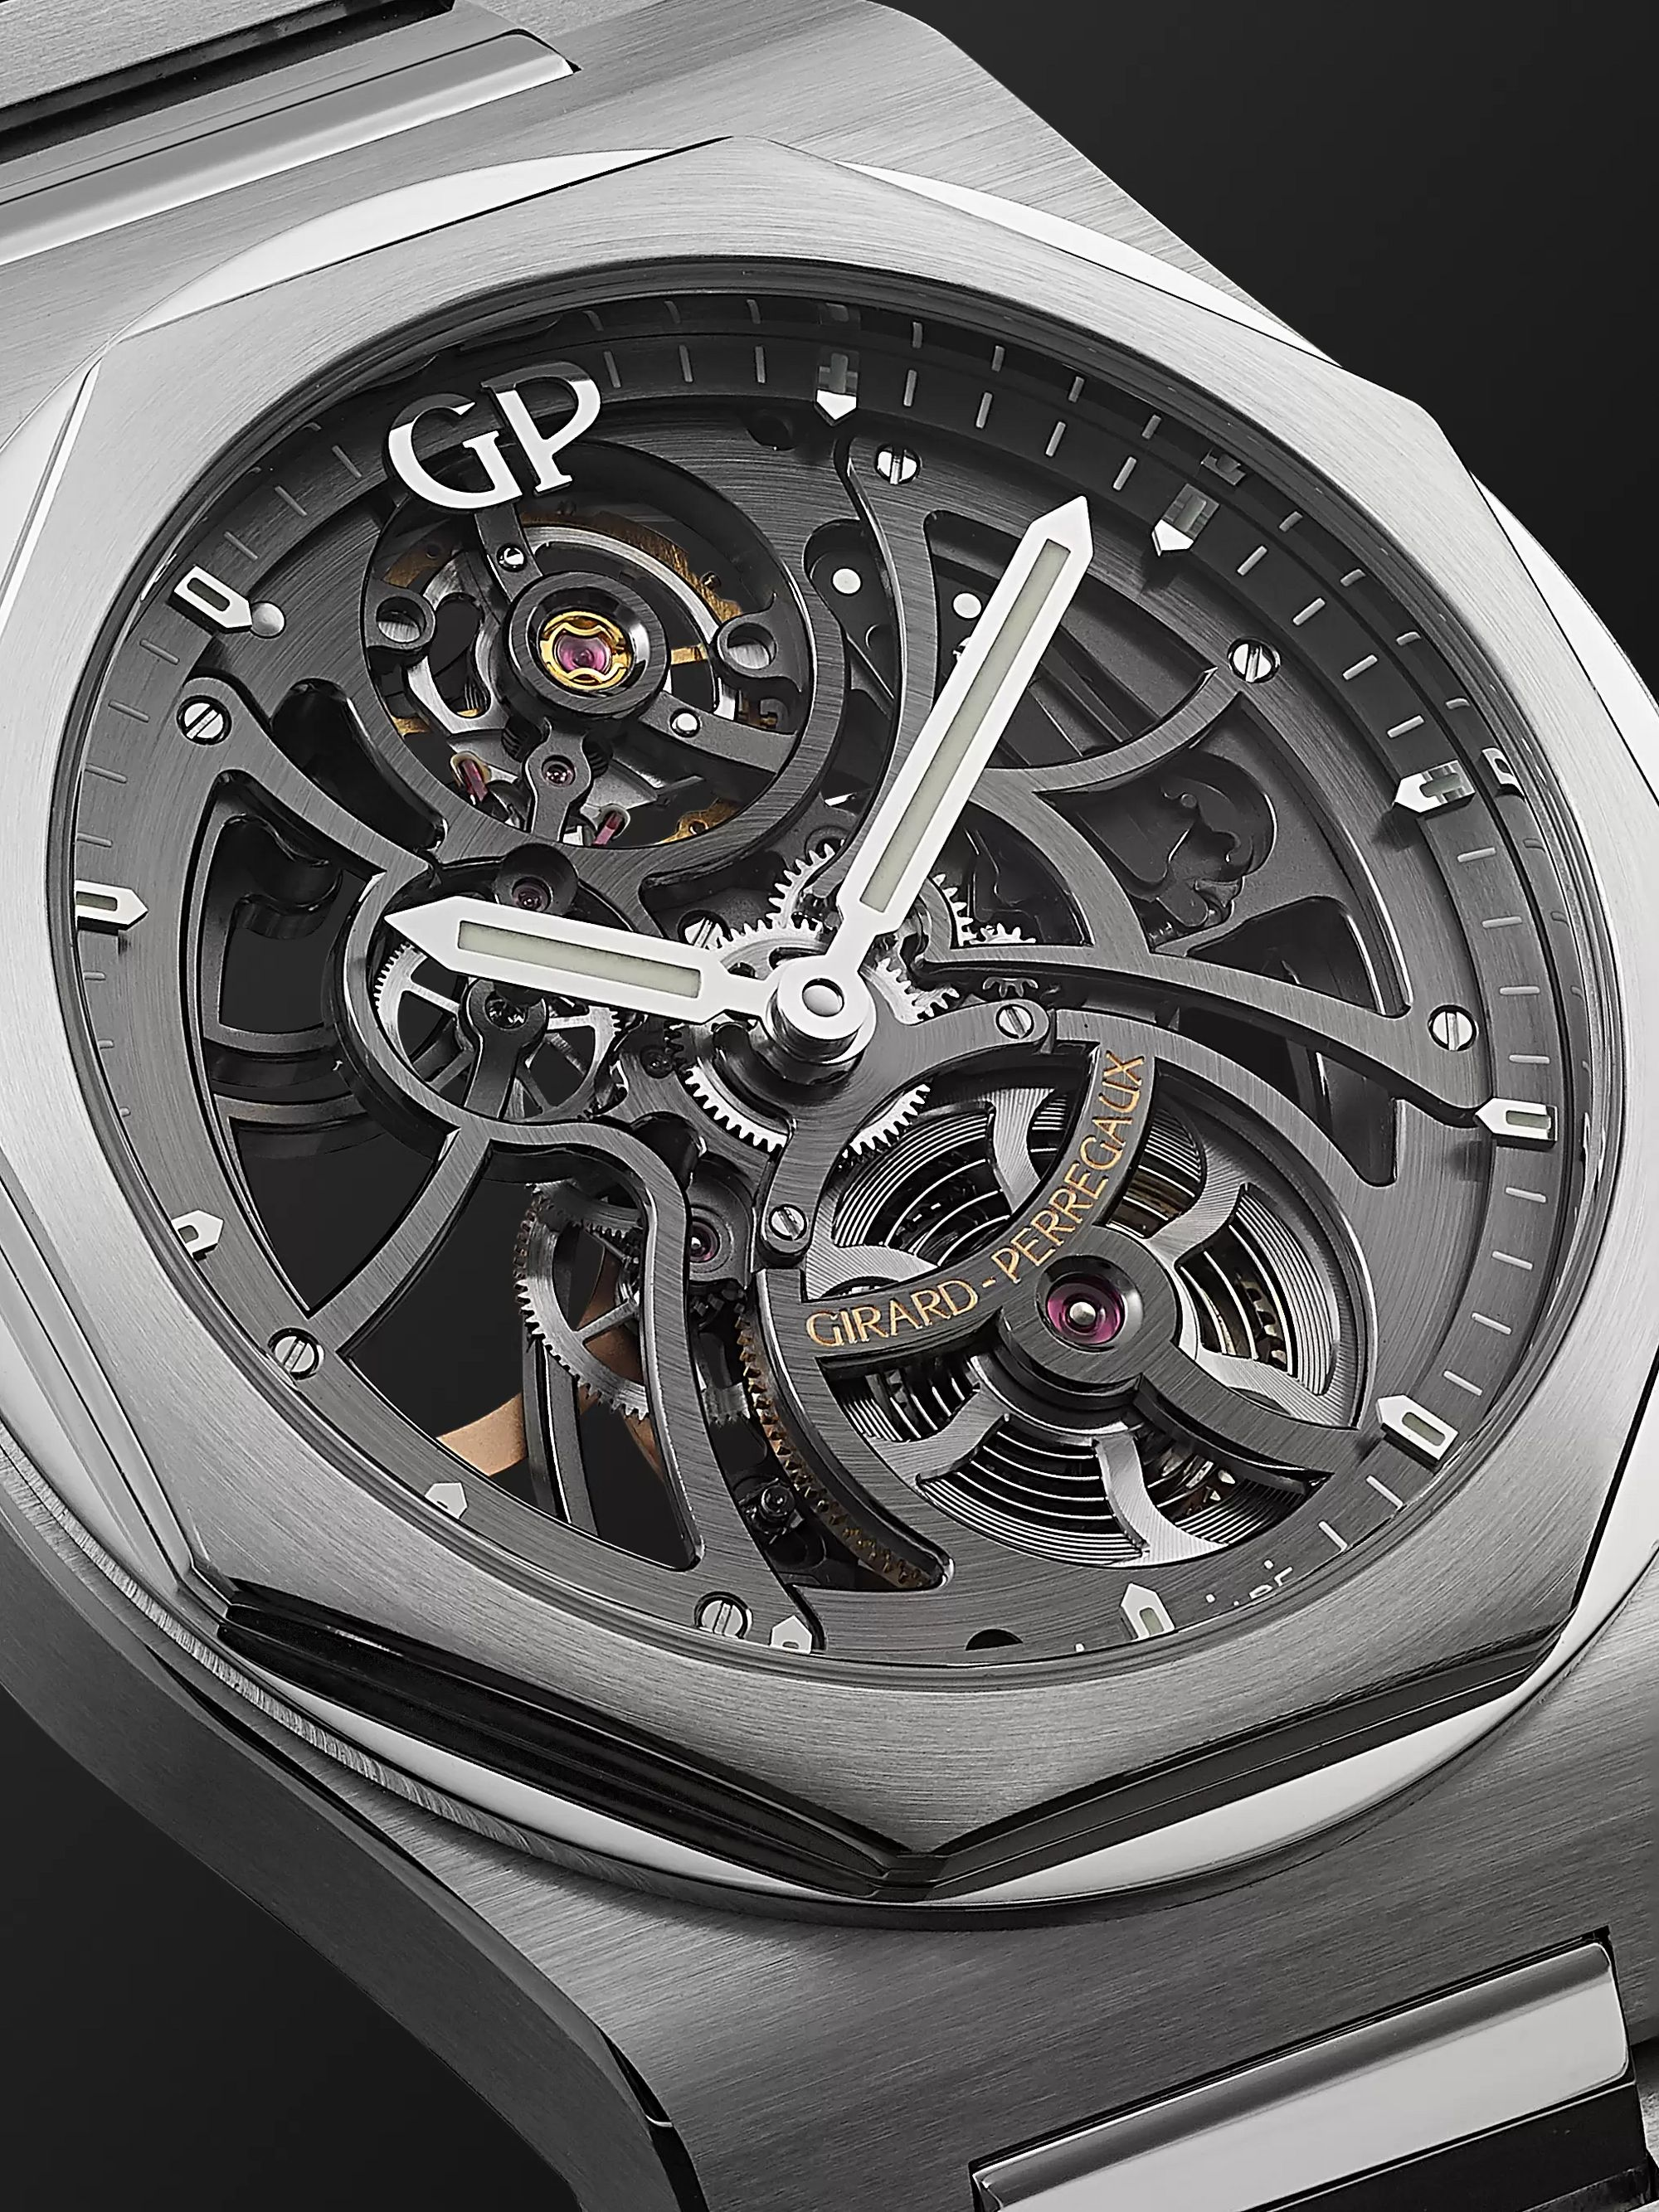 Girard-Perregaux Laureato Automatic Skeleton 42mm Stainless Steel Watch, Ref. No. 81015-11-001-11A